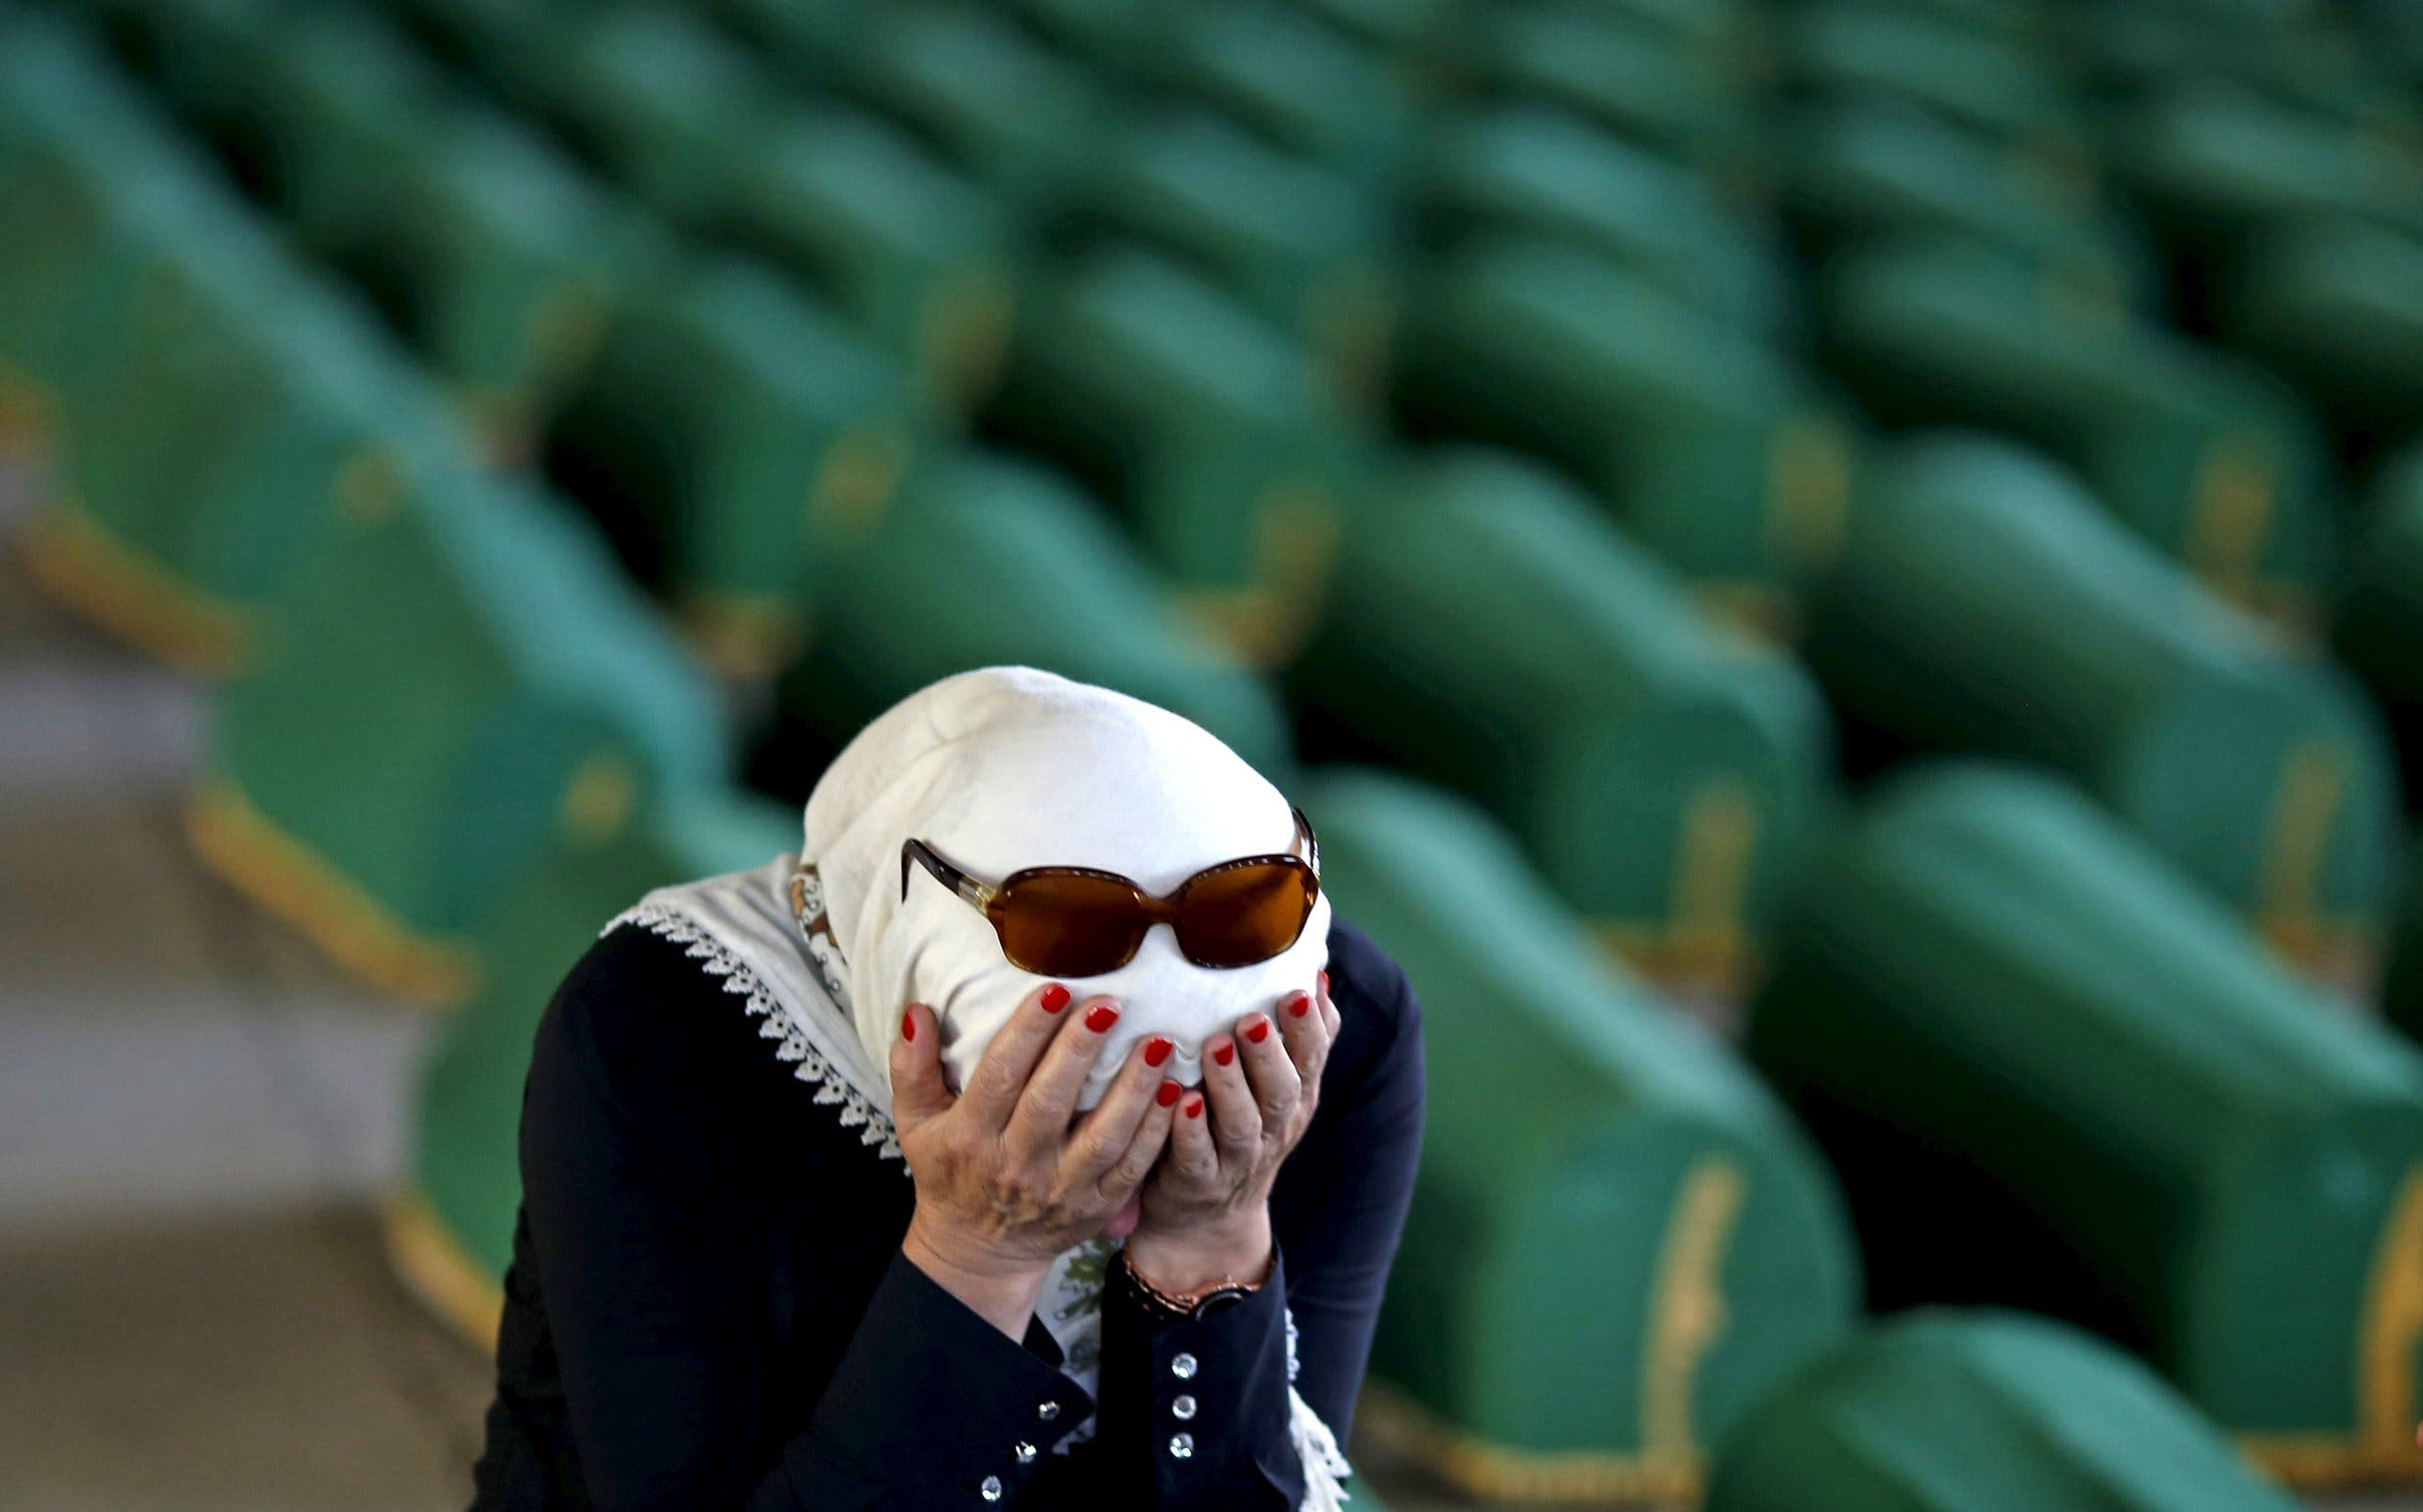 woman cries near the coffins of victims of the 1995 Srebrenica massacr in Potocari, Bosnia and Herzegovinain Memorial center Potocari, Bosnia and Herzegovina July 10, 2015. (Reuters)